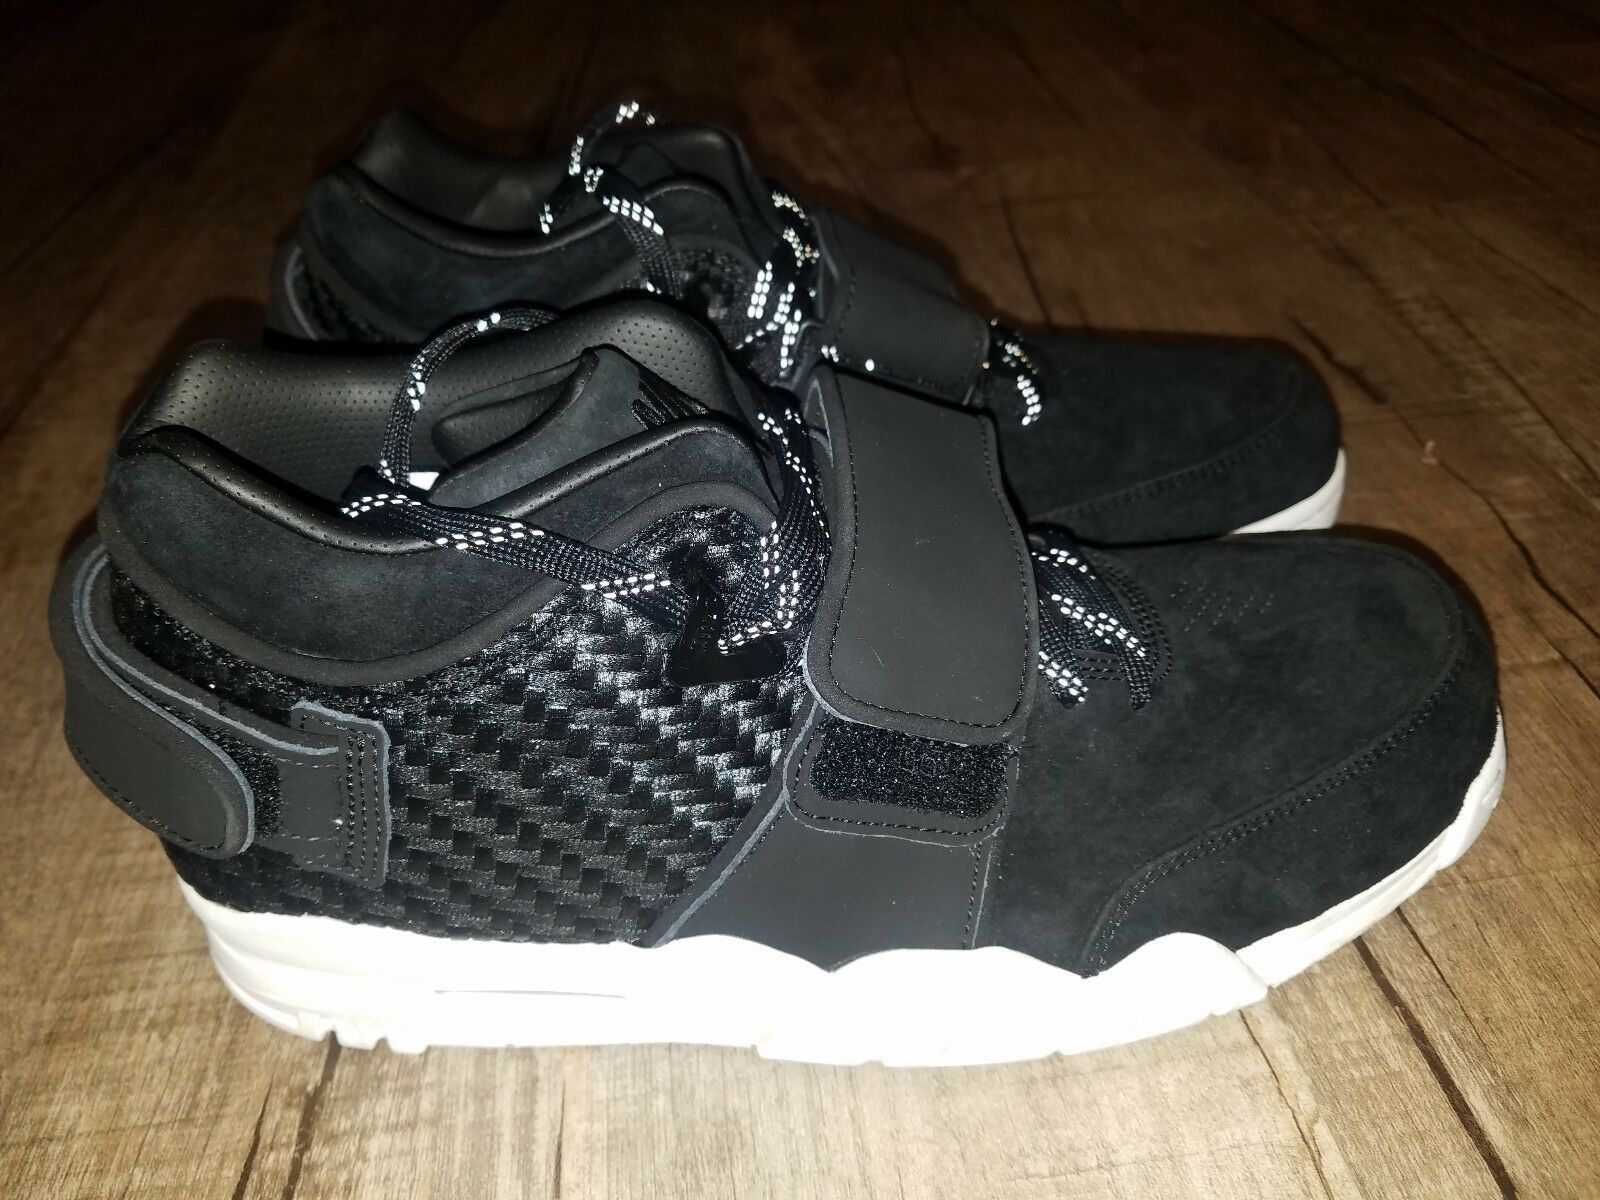 NIKE AIR TRAINER VICTOR CRUZ 11 SHOES BLACK MENS Sz 11 CRUZ NEW 777535-004 LEATHER SUEDE 78bed3